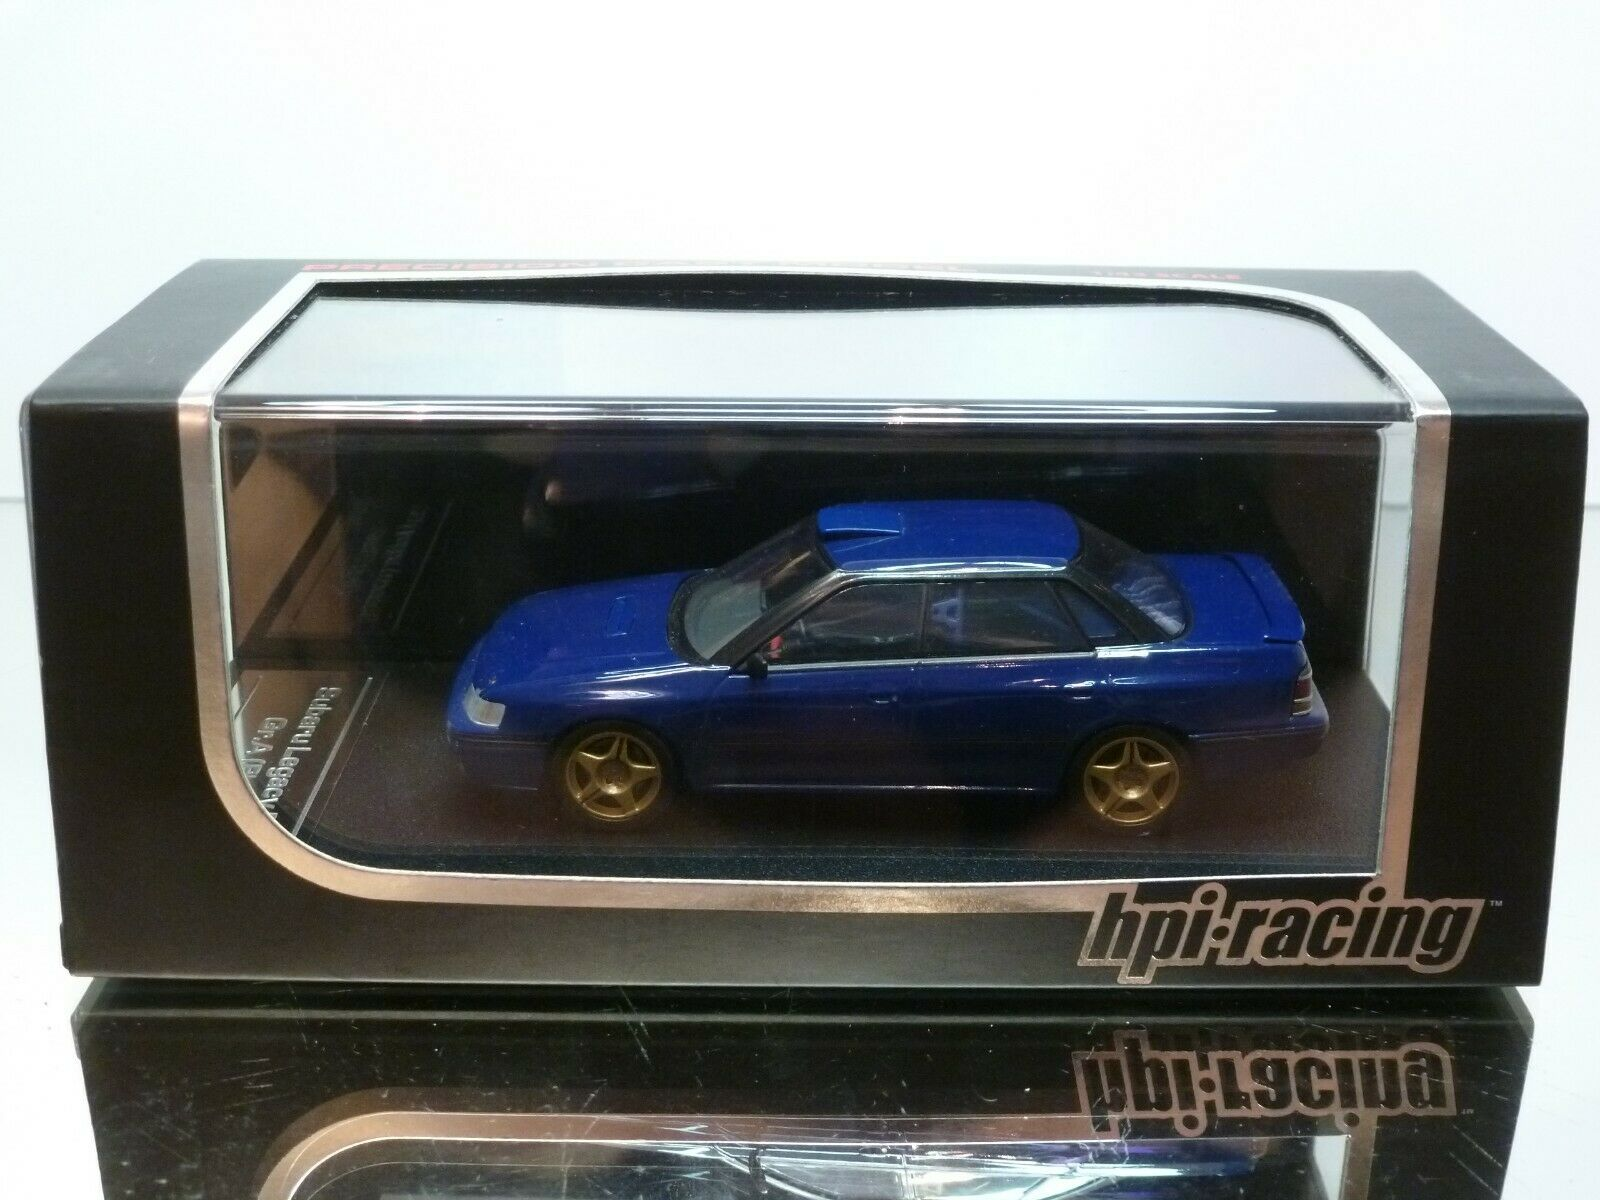 HPI RACING 8191 SUBARU LAGACY RS - PLAIN Couleur bleu 1 43 - EXCELLENT IN BOX